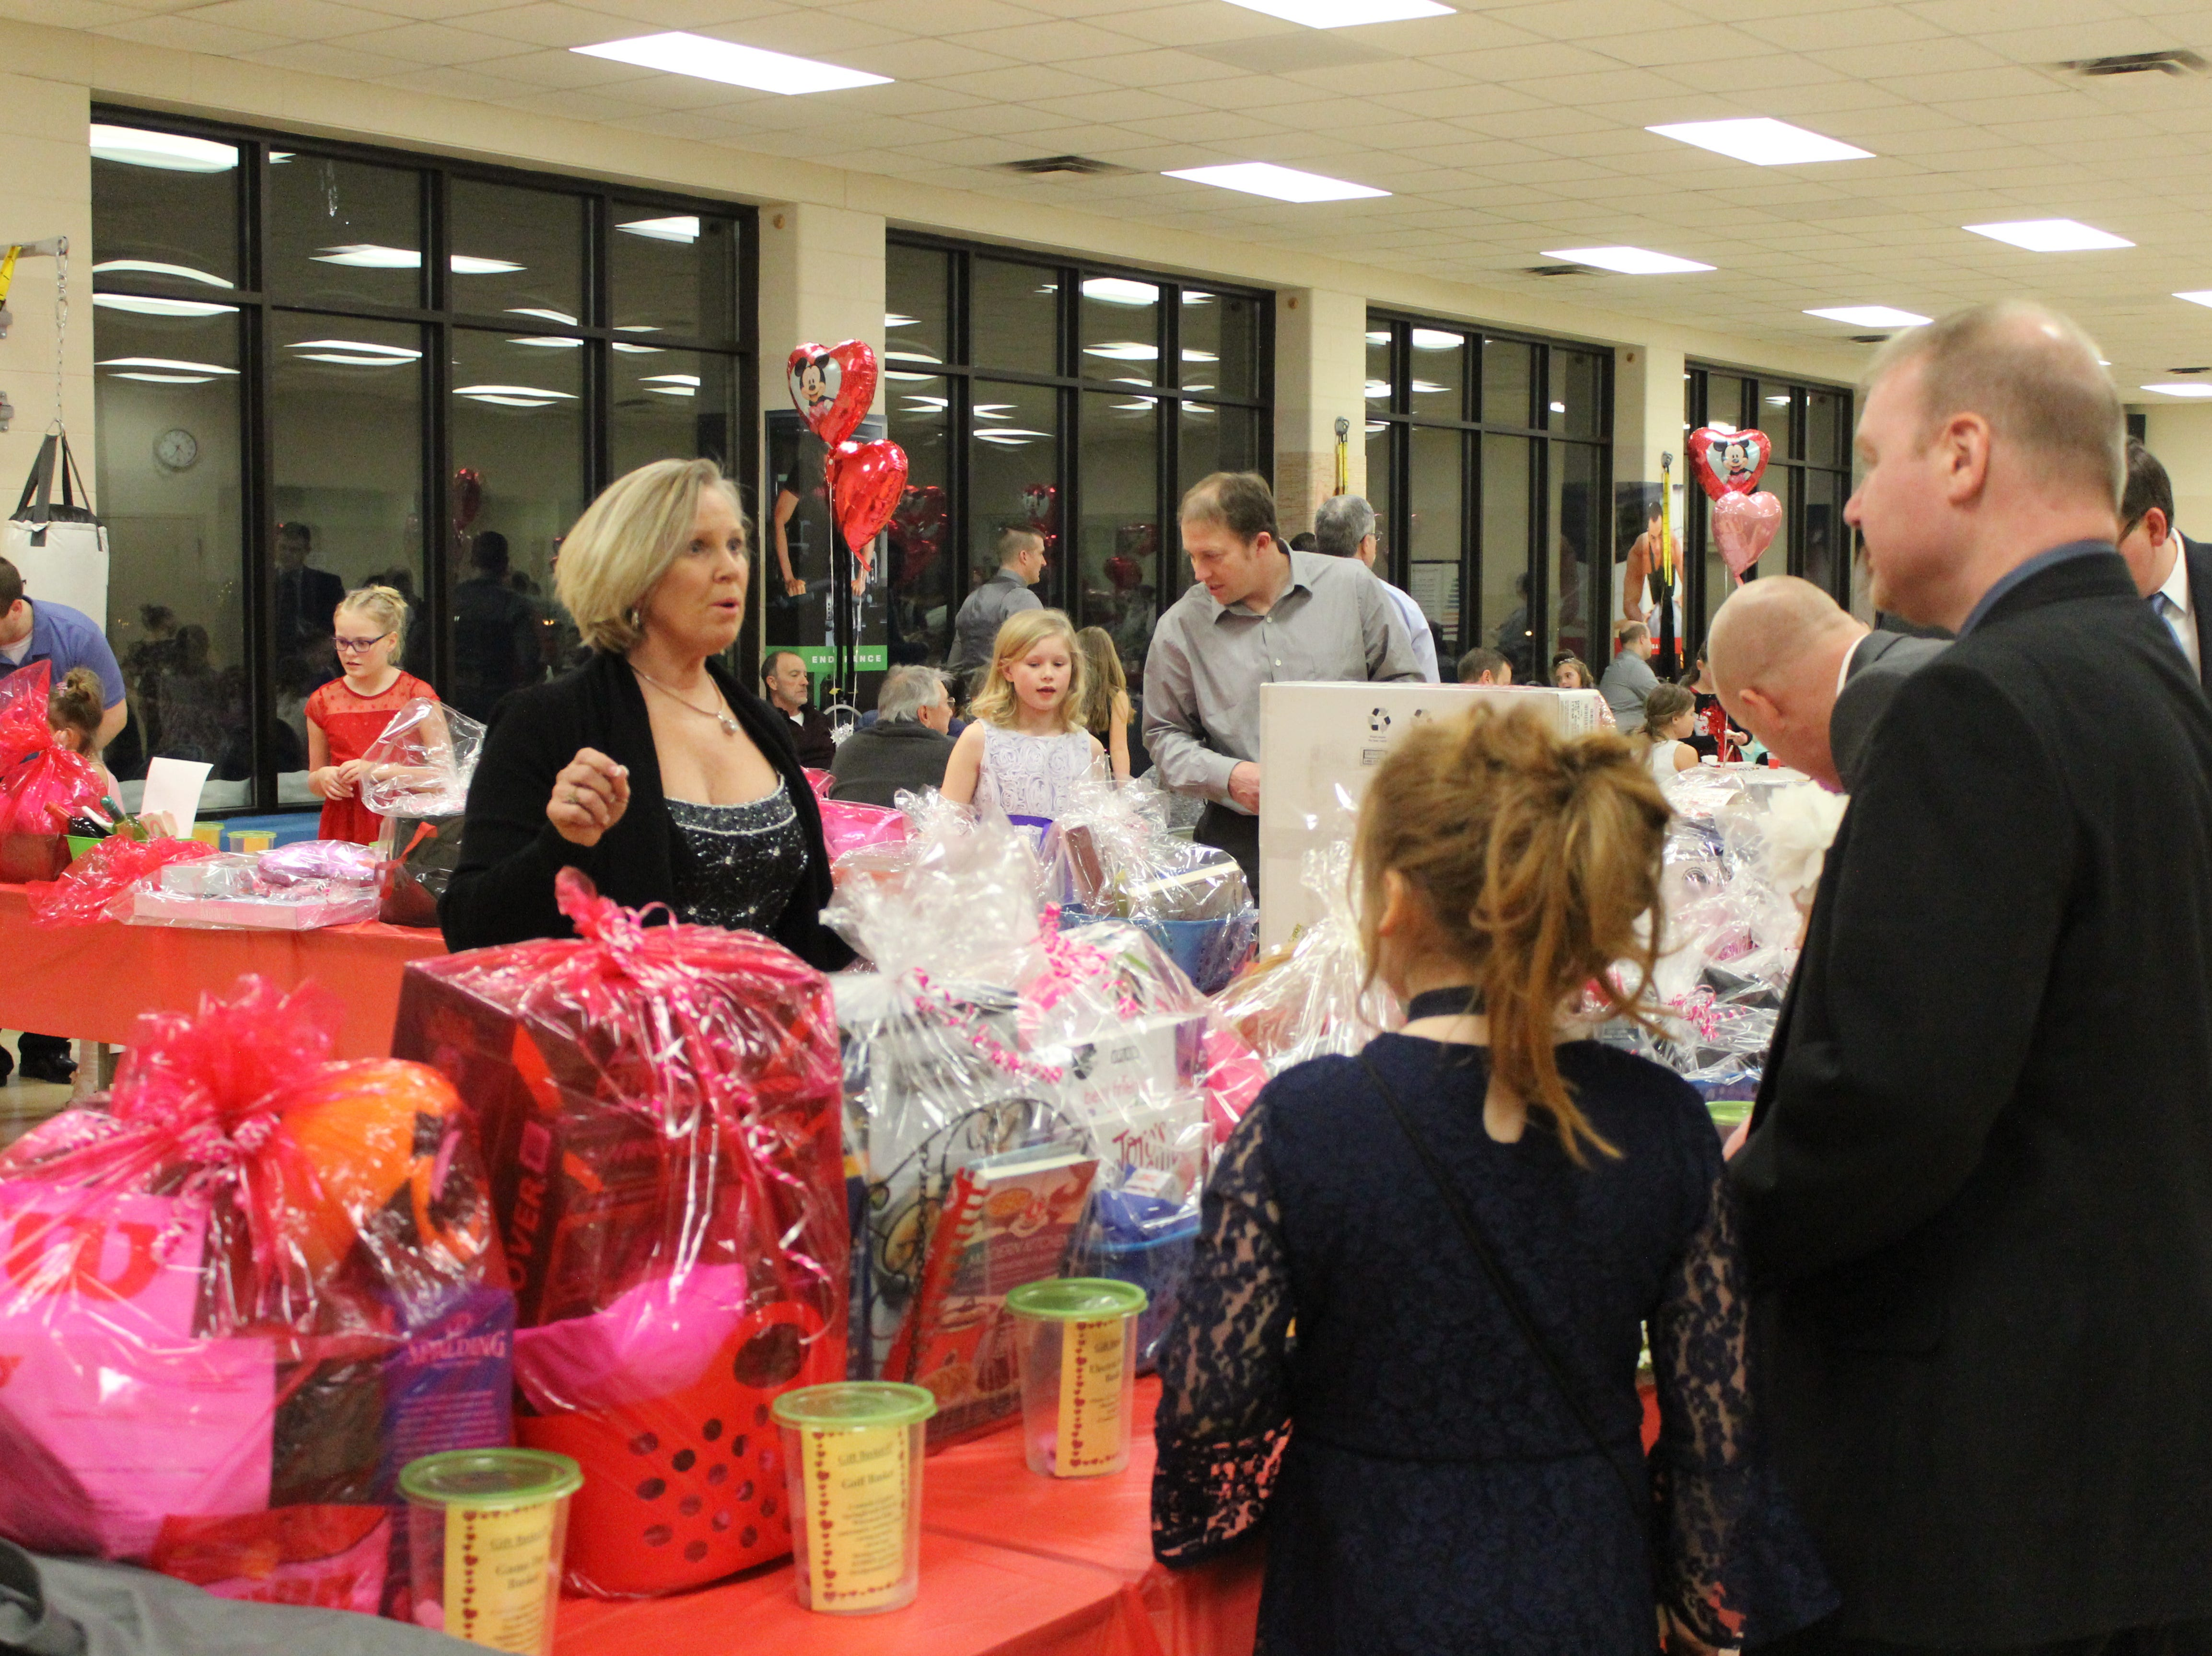 Fathers and daughters enjoy a night out at the annual Woodson YMCA Father Daughter dance, while looking over some of the baskets they could win in the raffle.